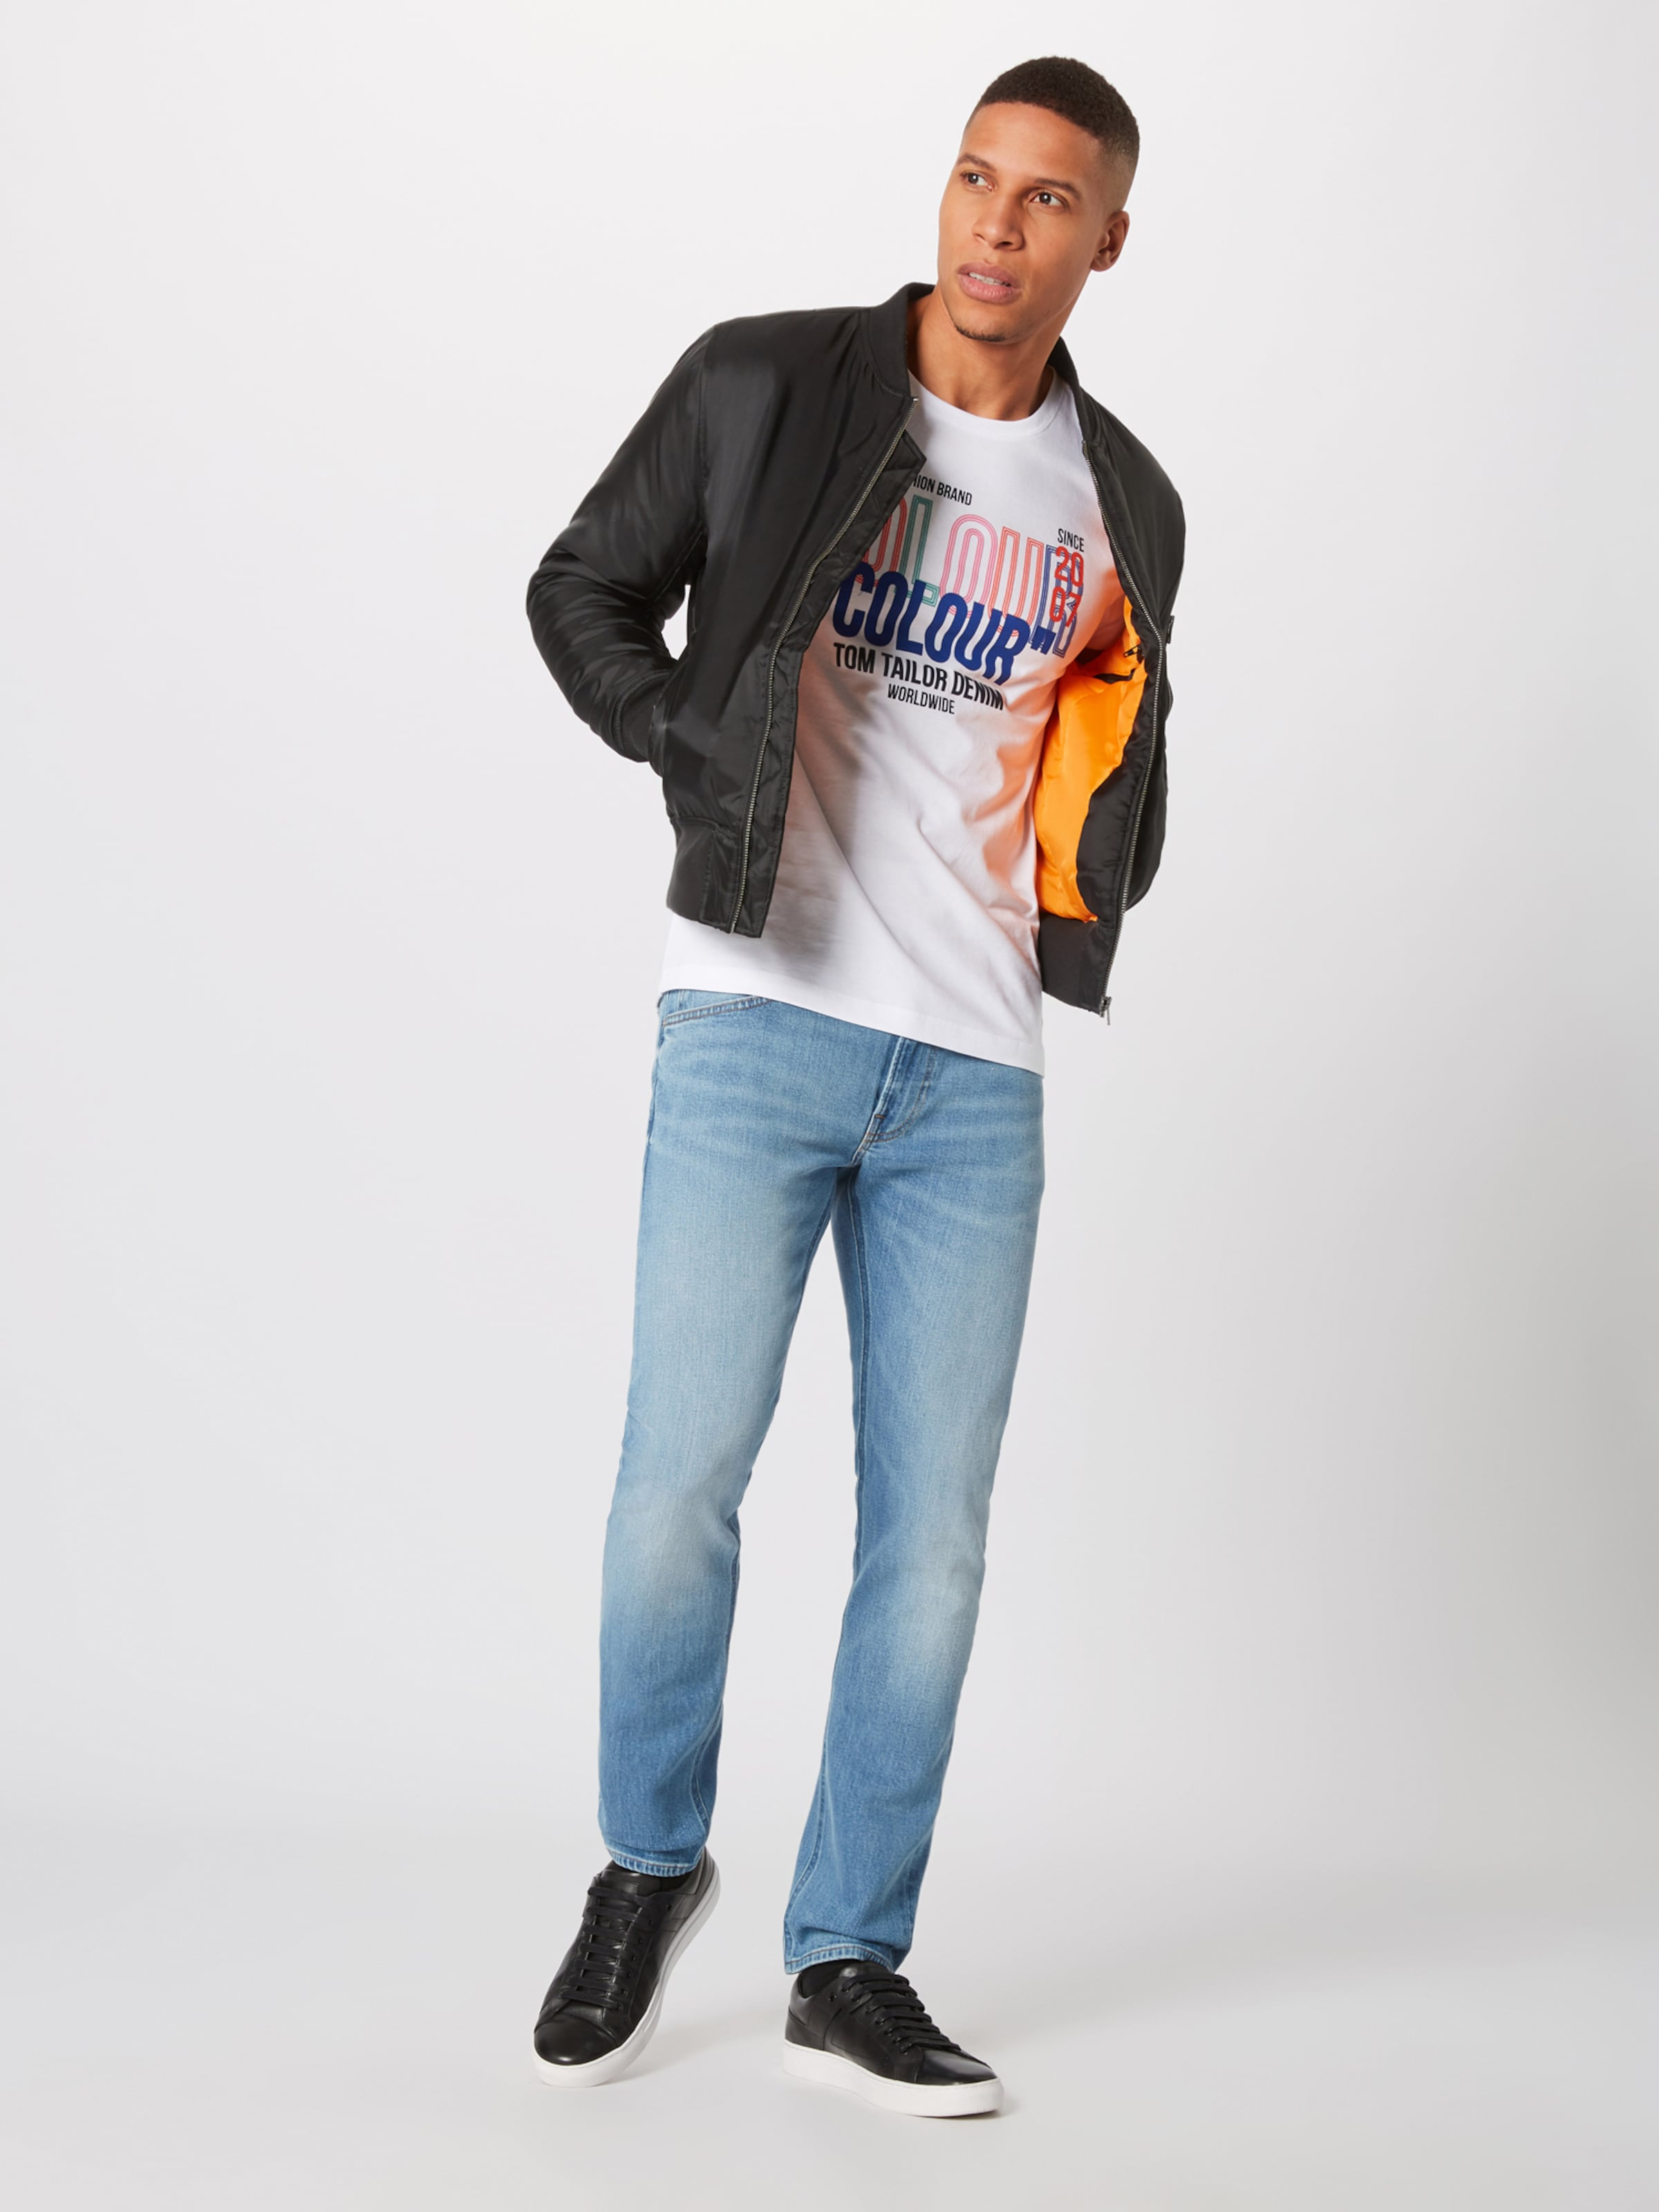 Tom Tailor Denim In Shirt Weiß g7IYyvfb6